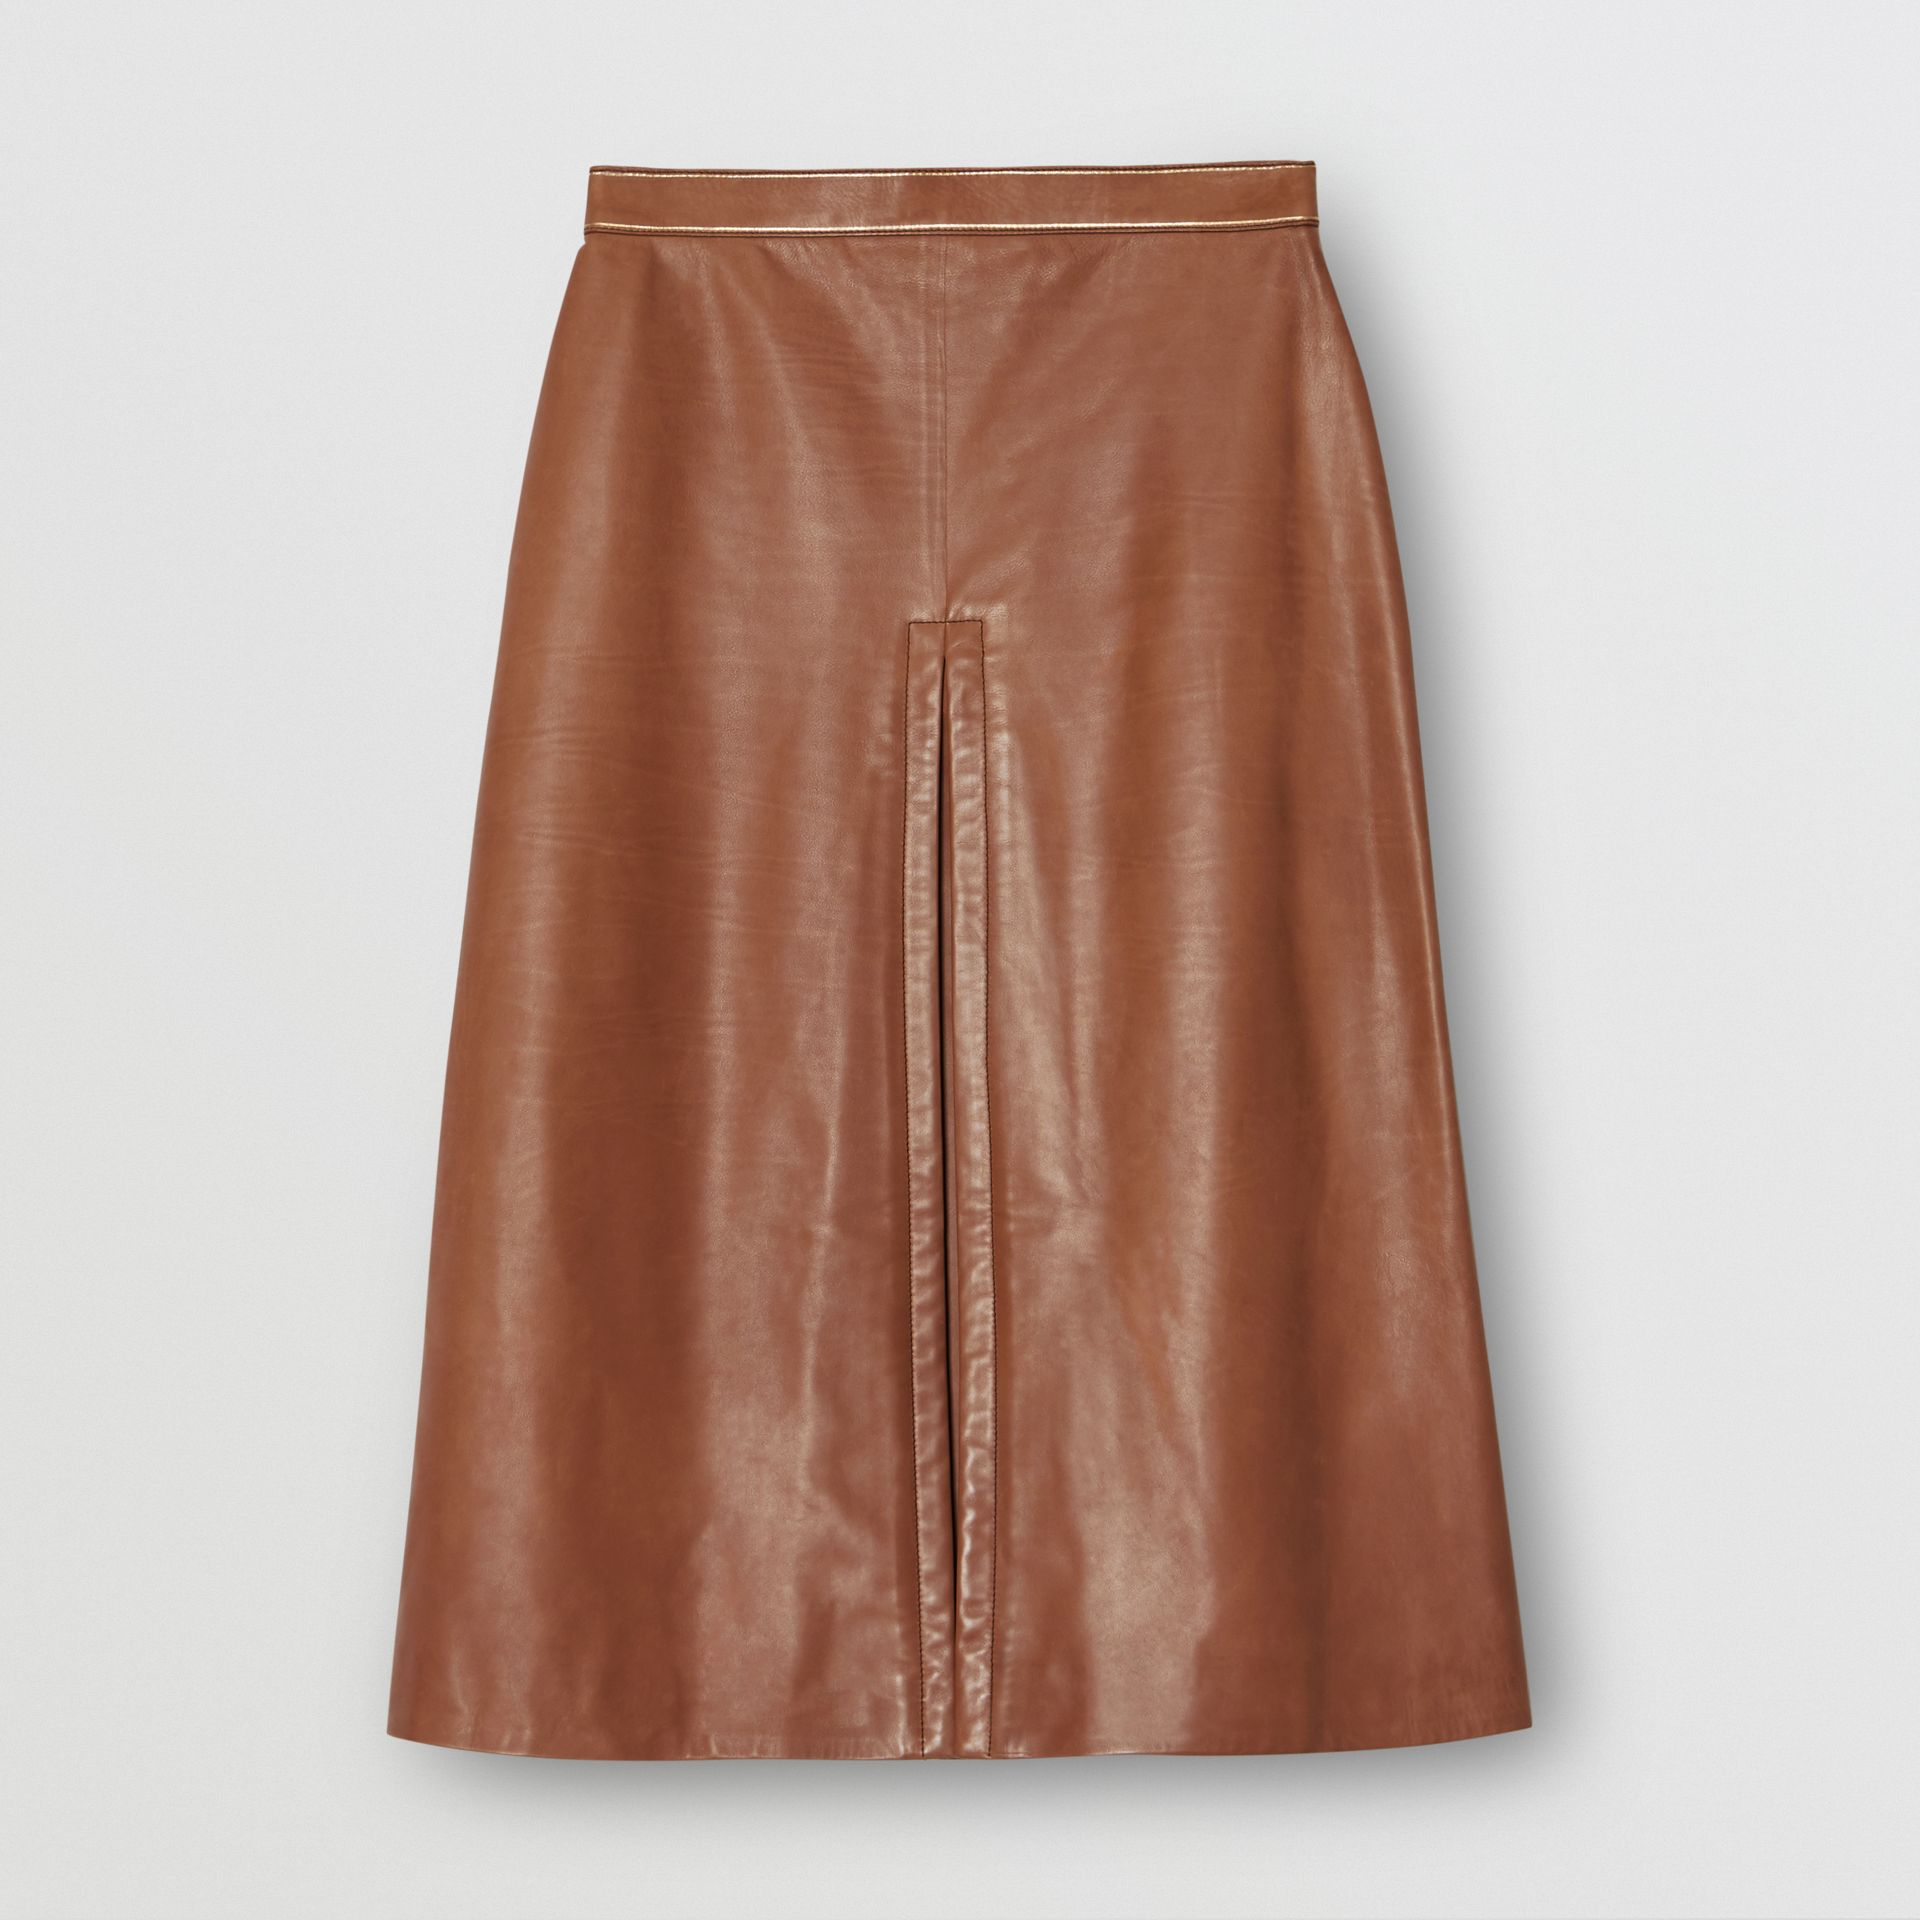 Box Pleat Detail Leather A-line Skirt in Flaxseed - Women | Burberry Canada - gallery image 3